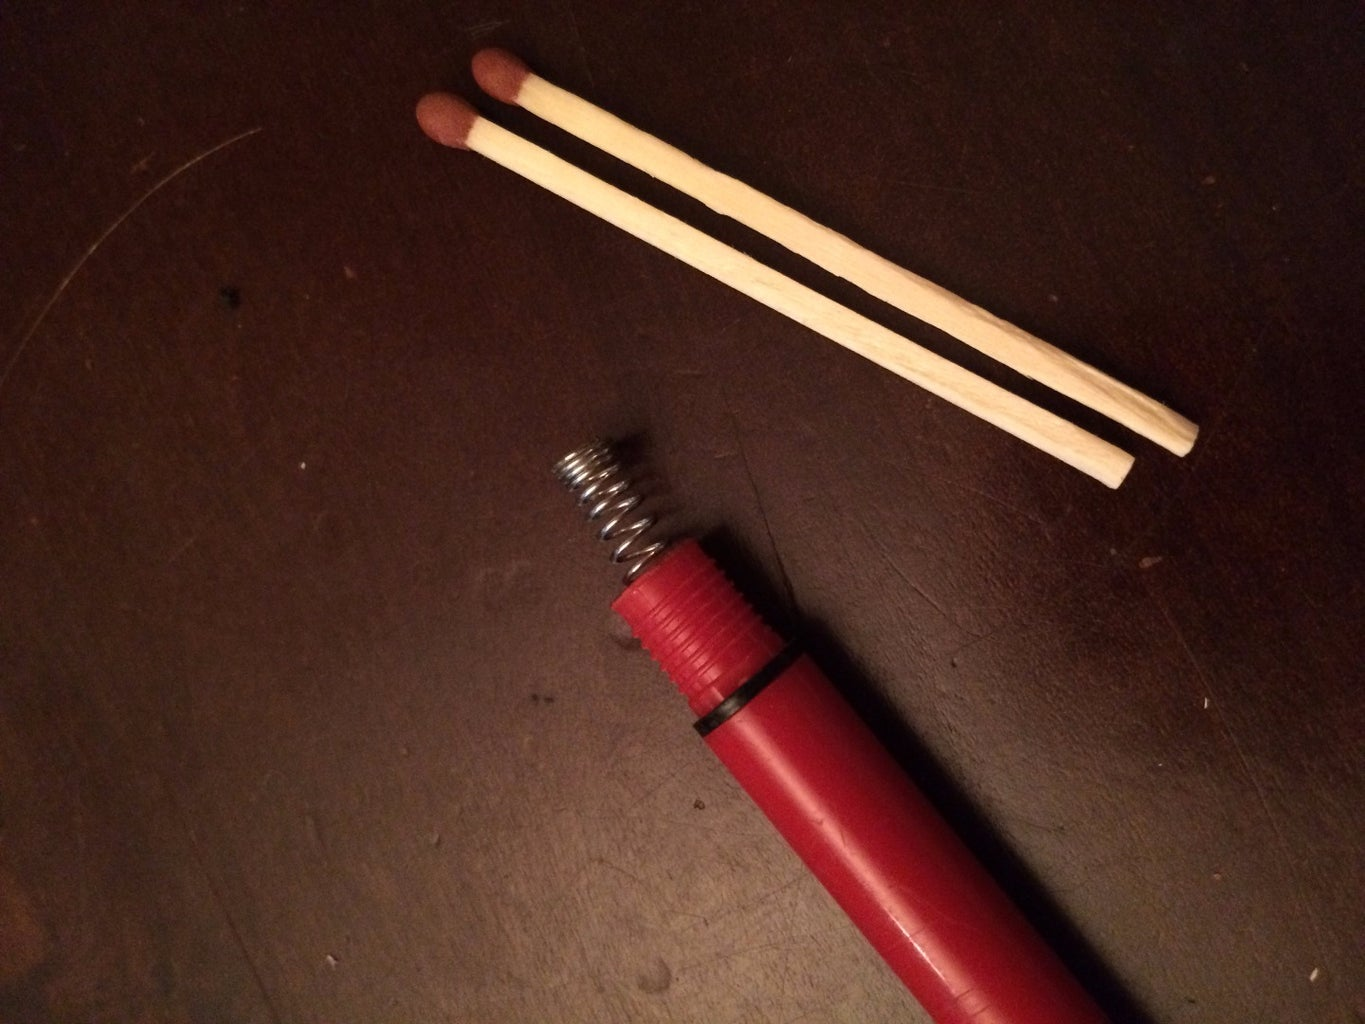 Adjust Spring Force to Hold the Matches